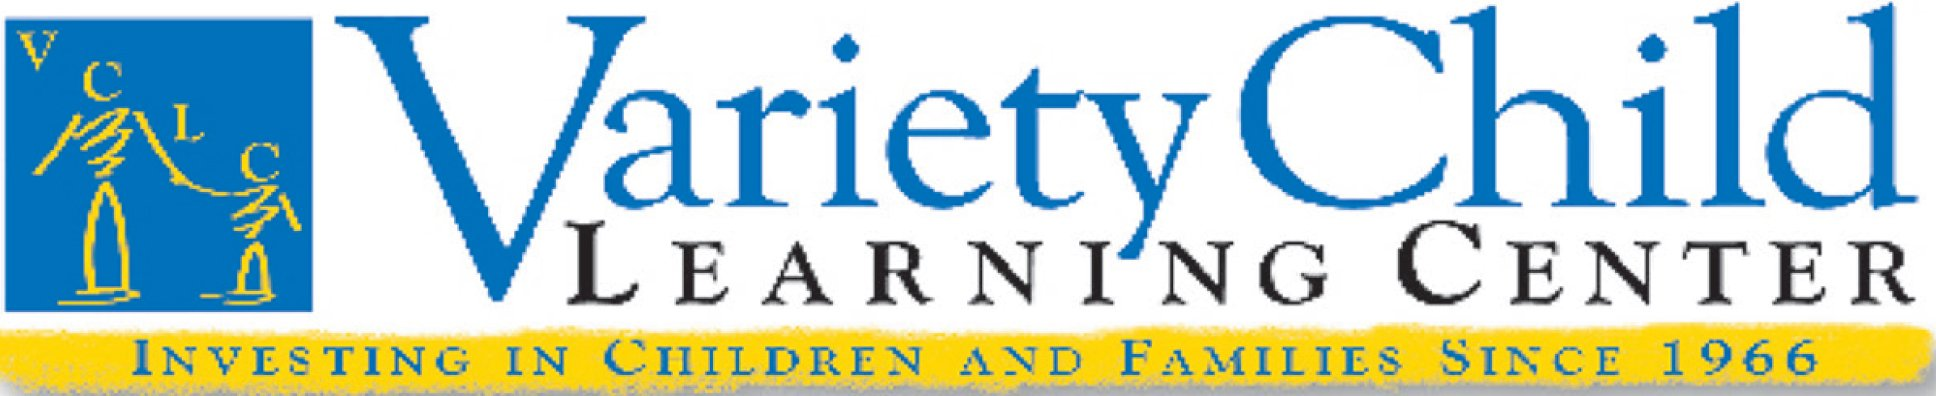 Variety Child Learning Center Center Social Skills Training Programs for Children and Teens